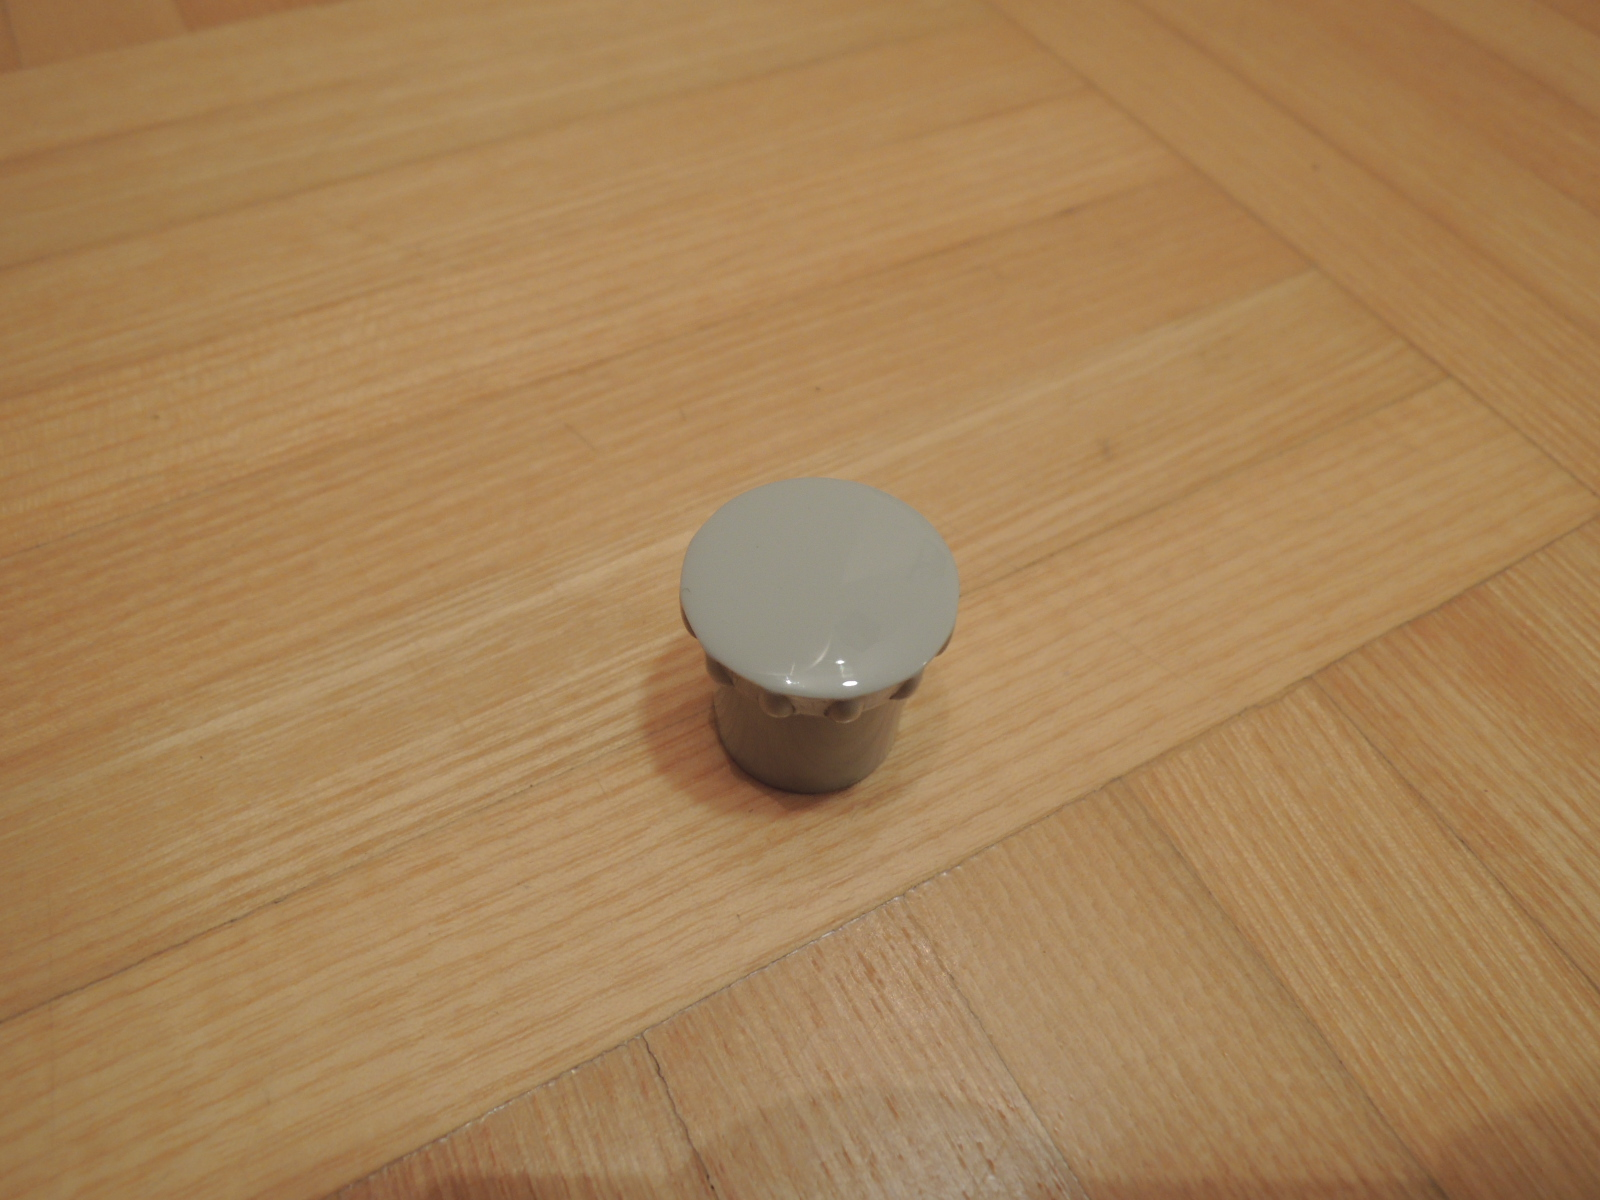 105 Bertone rear window catch knob reproduction